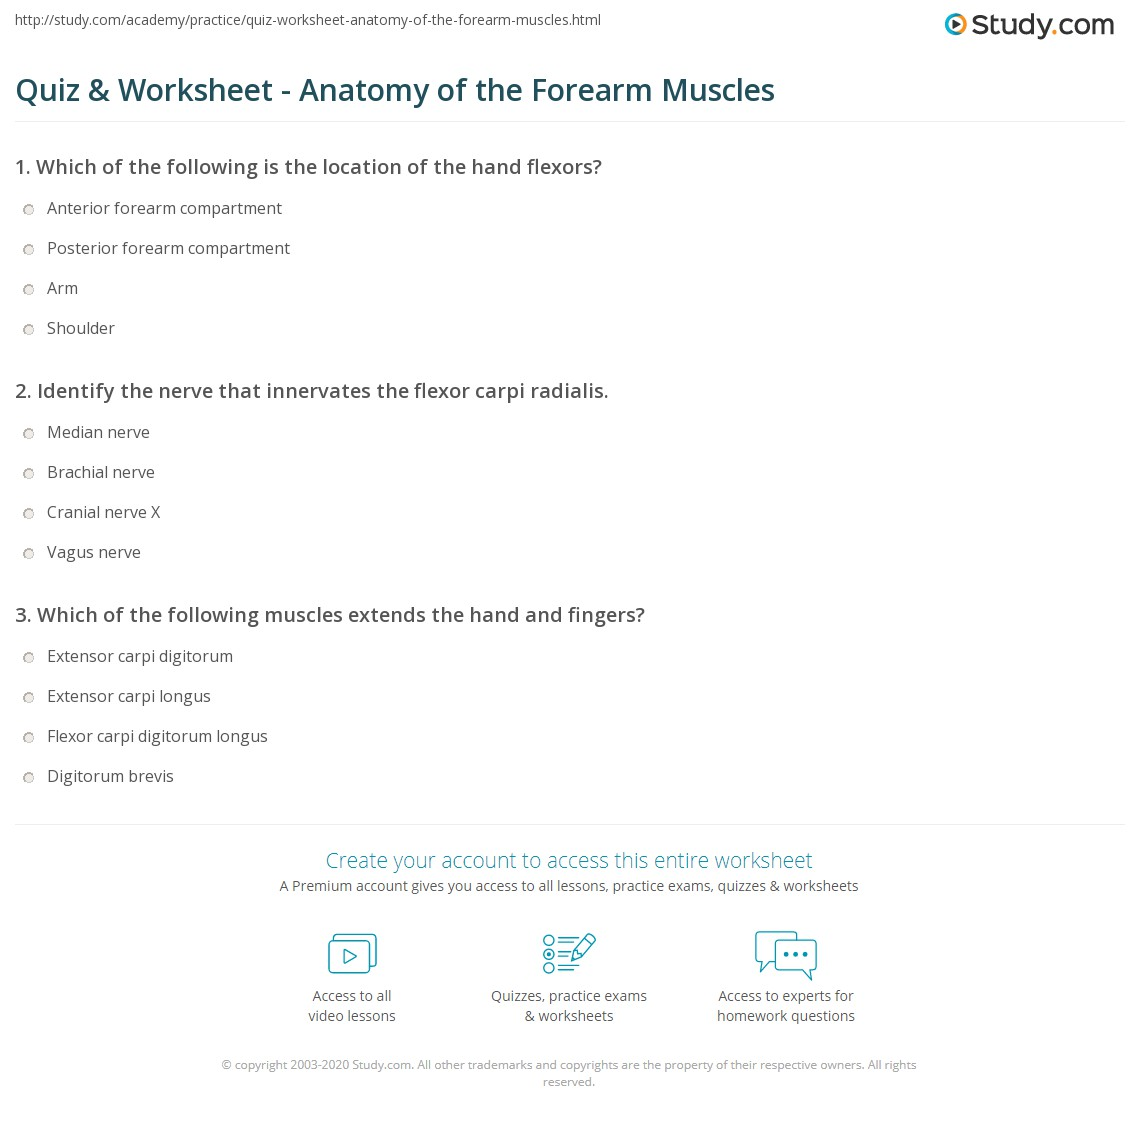 Quiz & Worksheet - Anatomy of the Forearm Muscles | Study.com